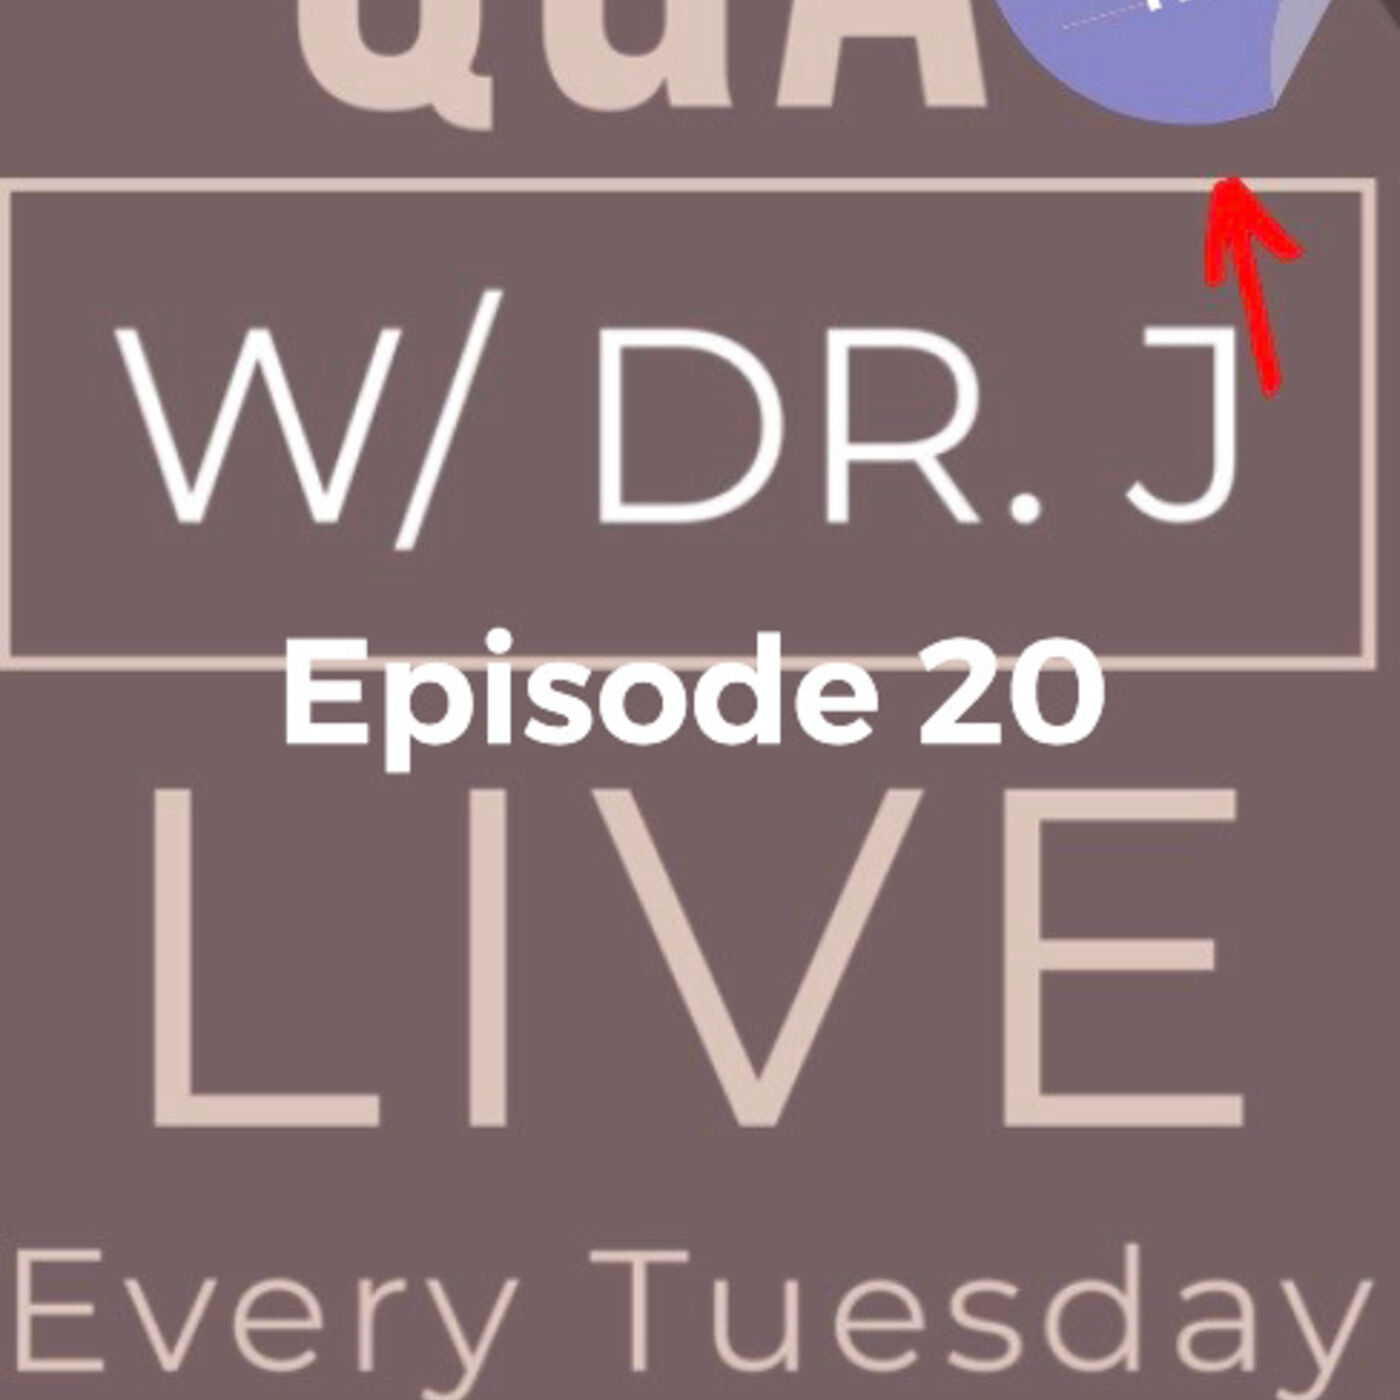 EP 20 Q&A w/ Dr J - All about Hair  with Dr Jeneby